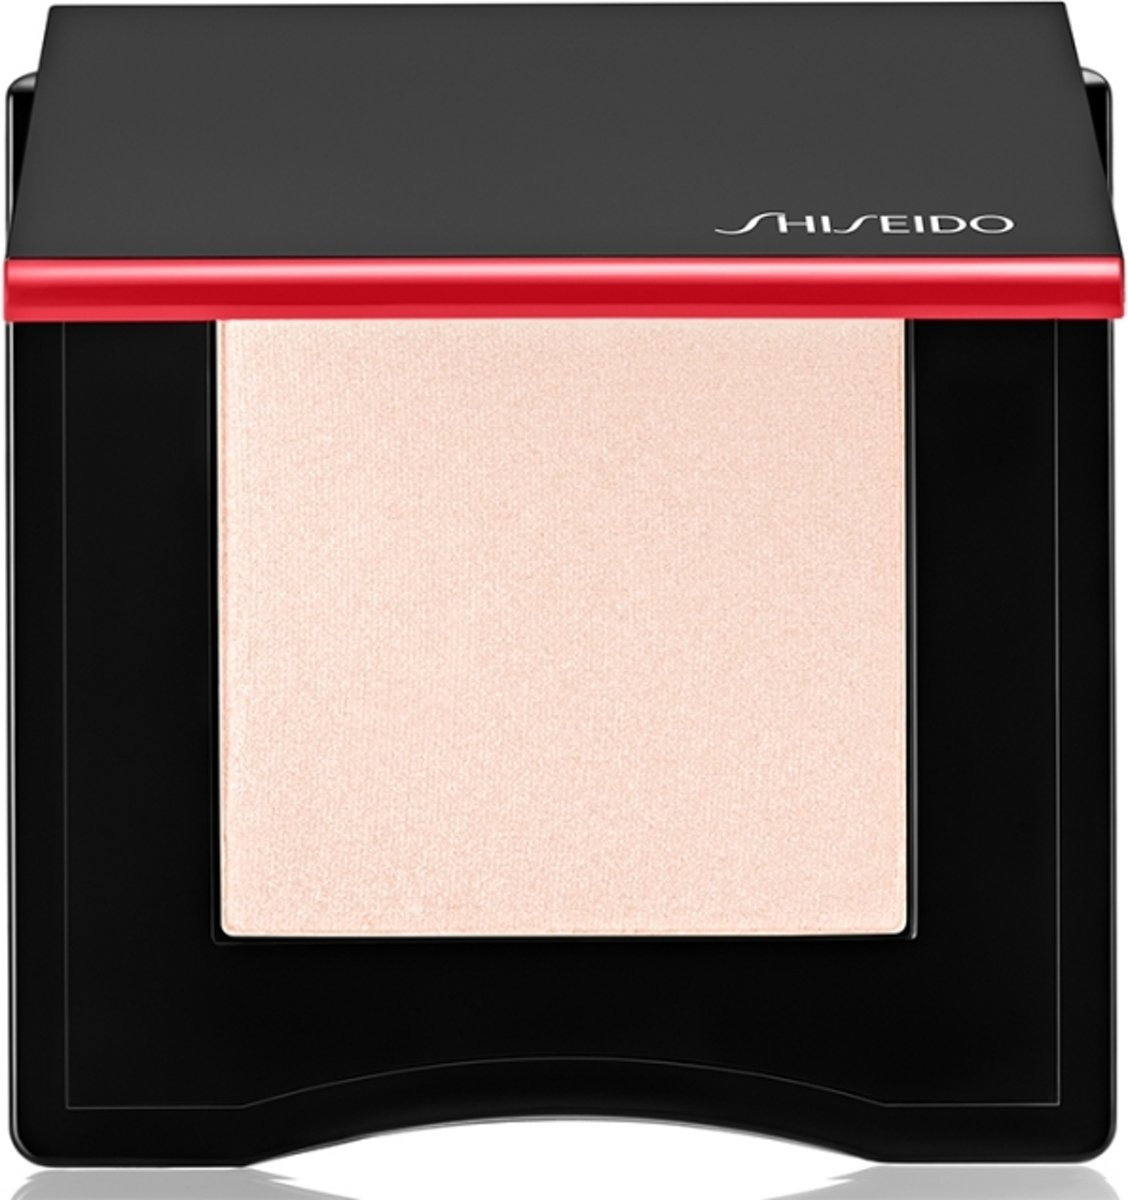 Shiseido InnerGlow CheekPowder Blush 4 gr - 01 - Inner Light